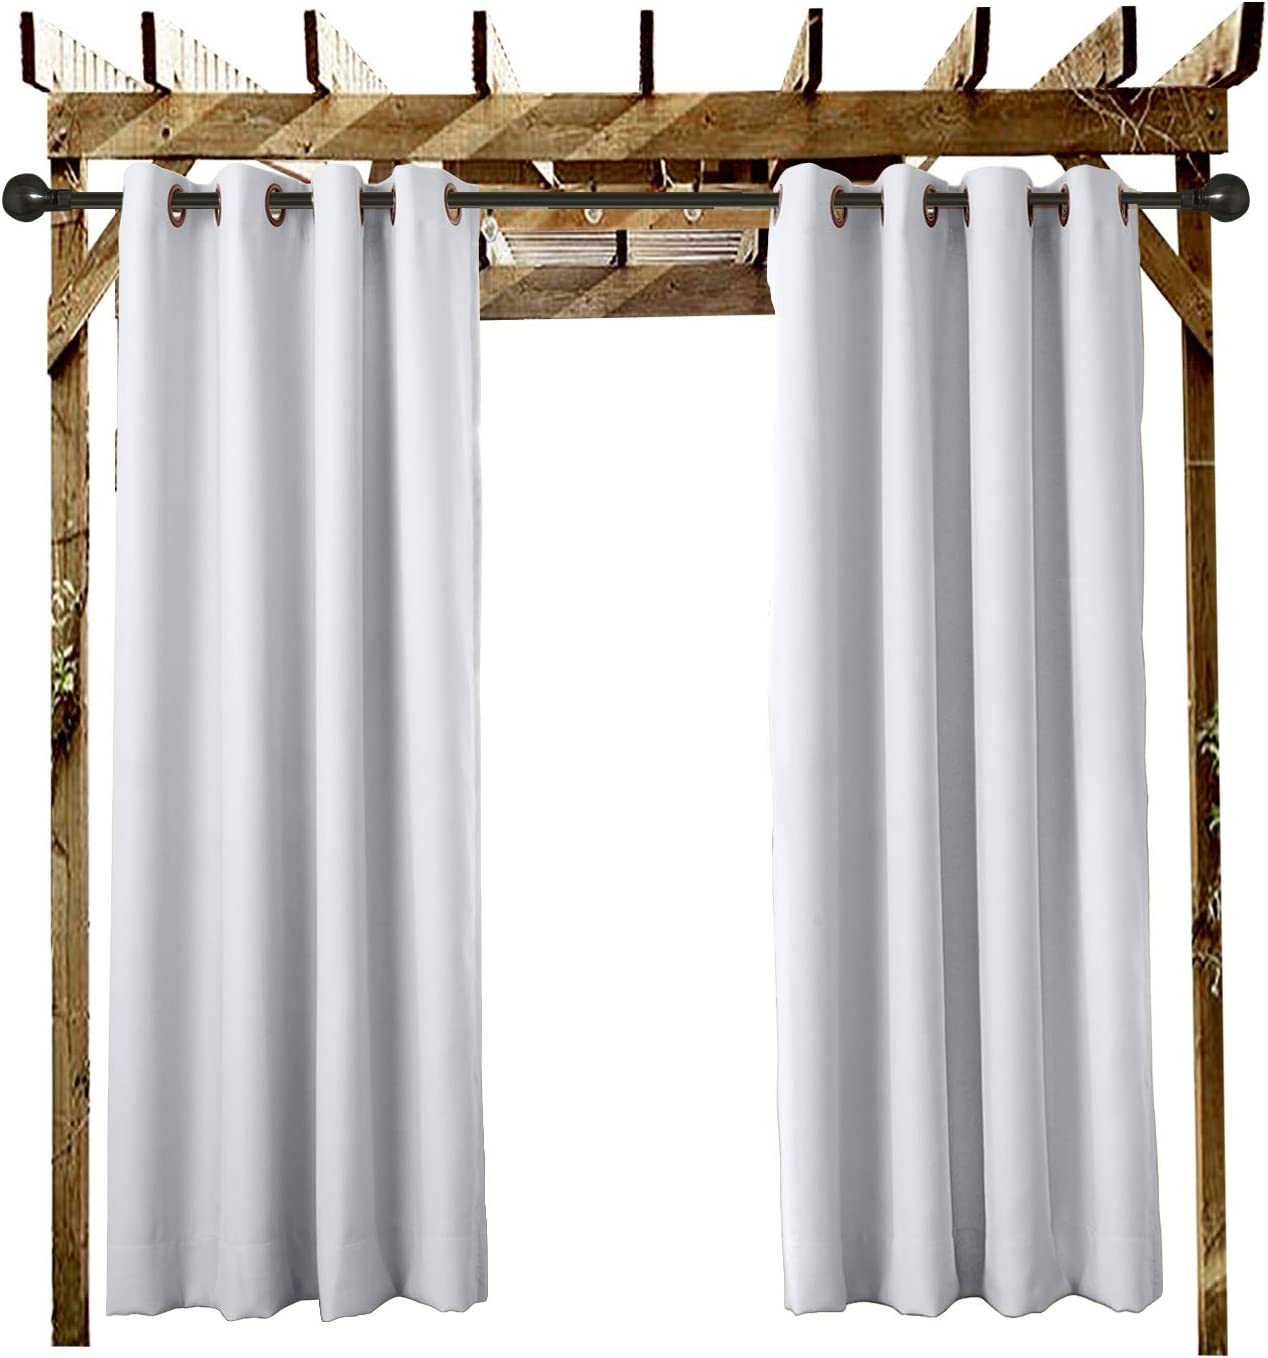 Extra Wide Outdoor Curtain White 150